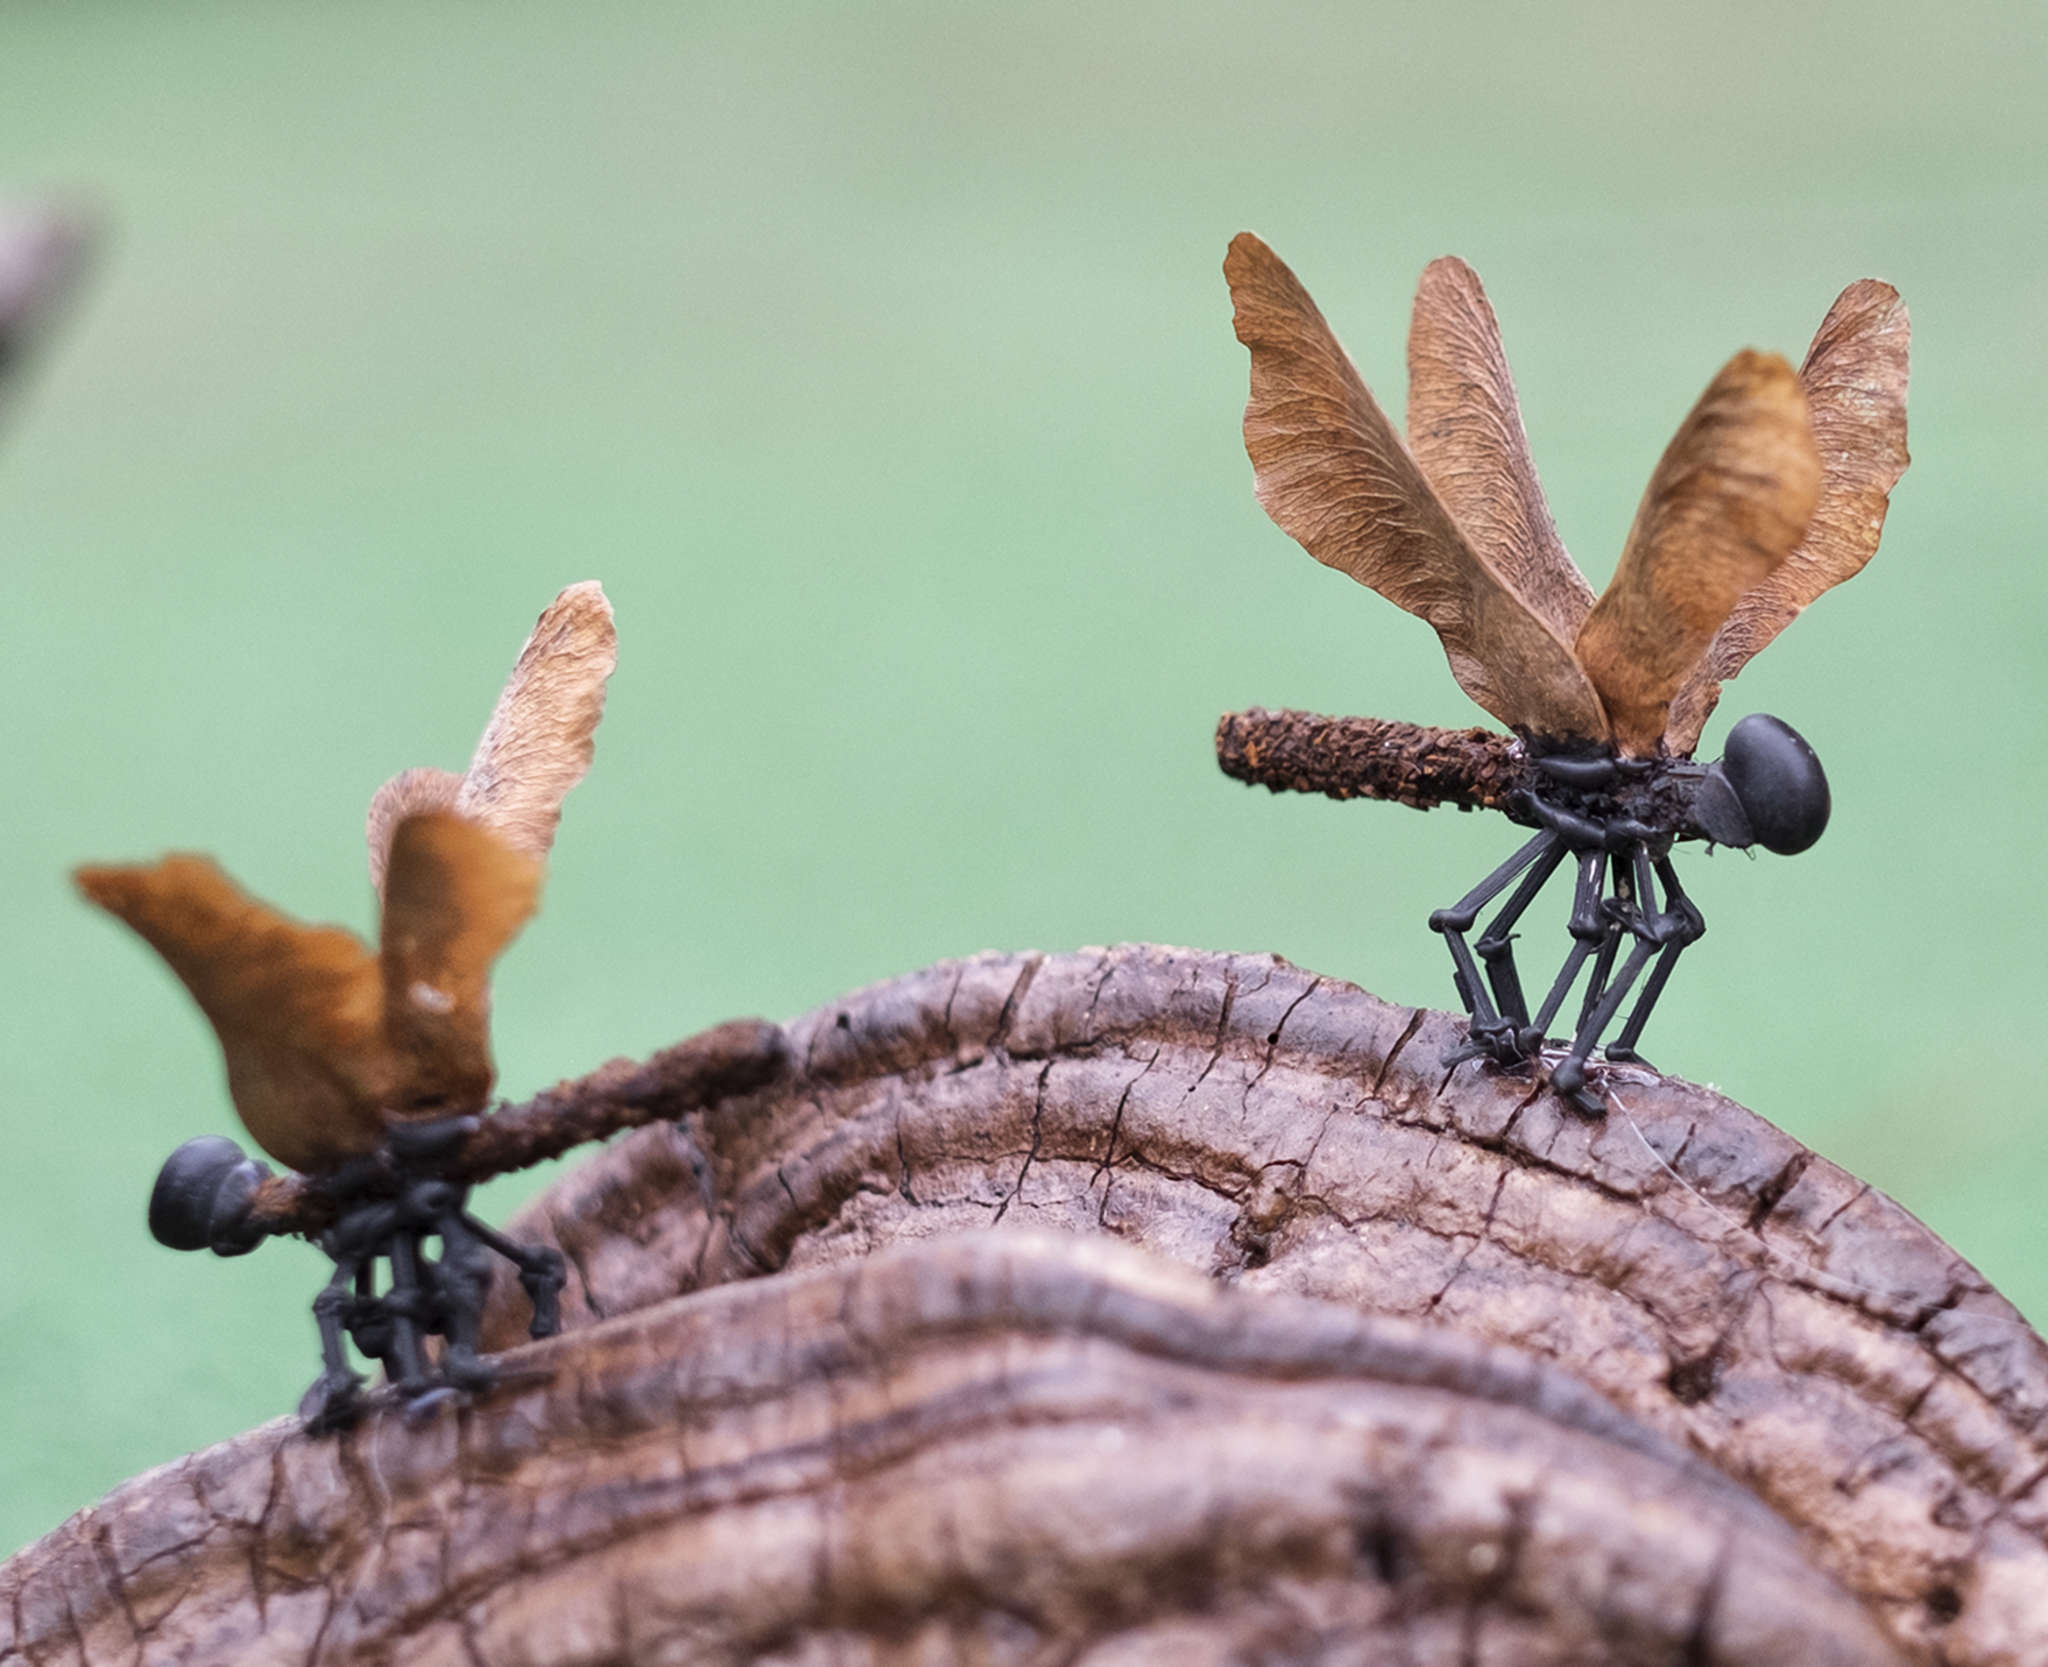 They may look like dragonflies, but are creations from Westcott, using driftwood and bamboo.